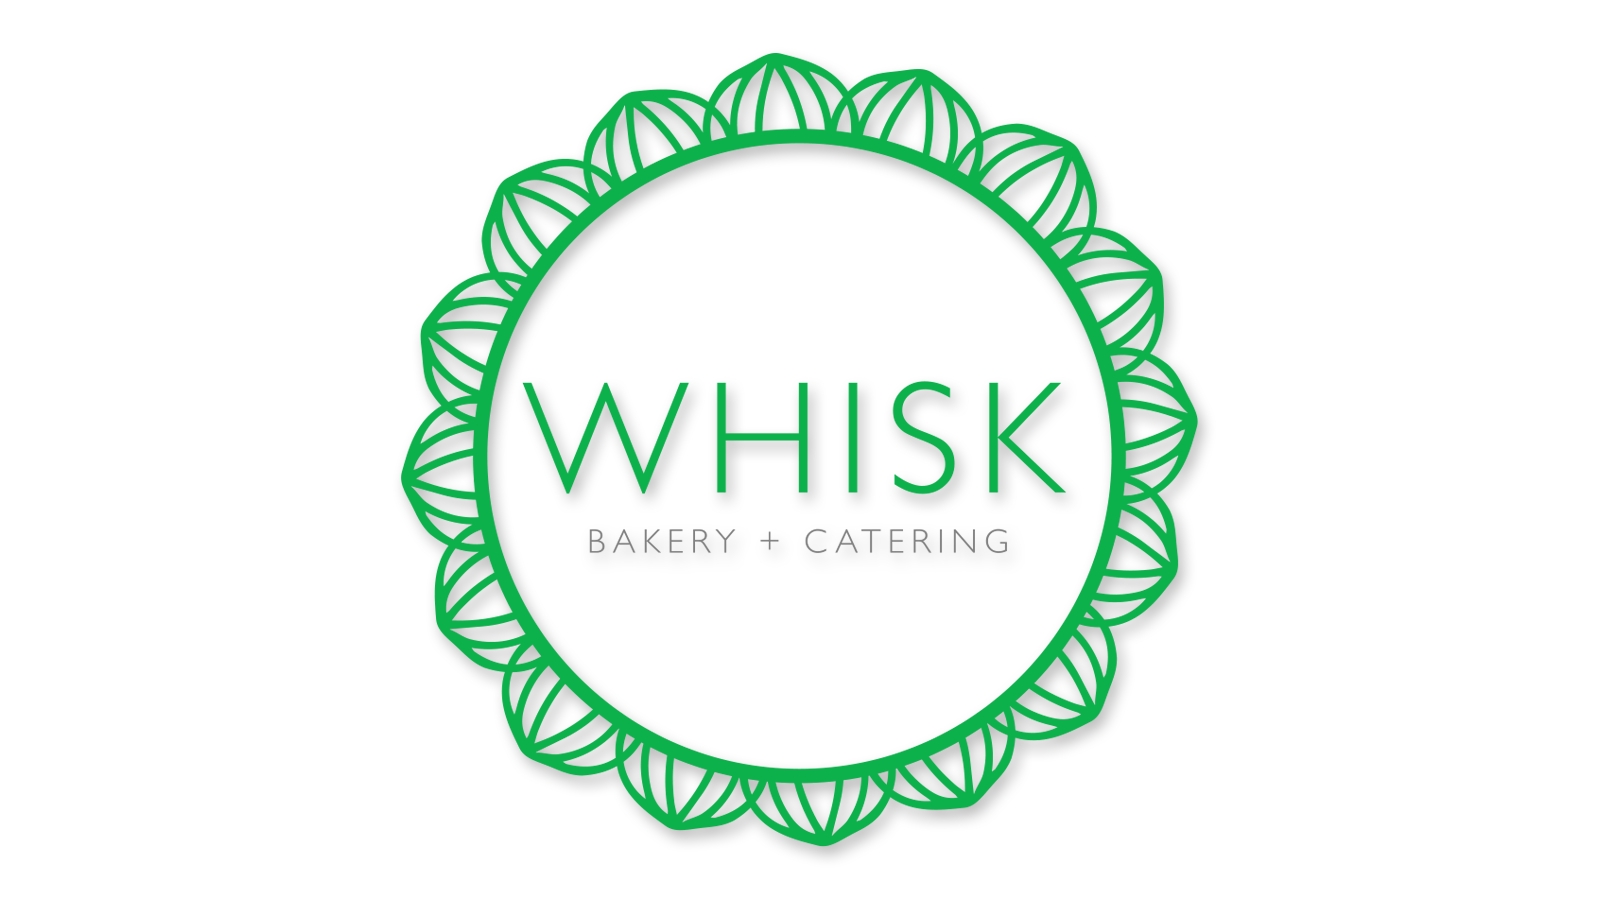 Whisk Bakery + Catering Logo